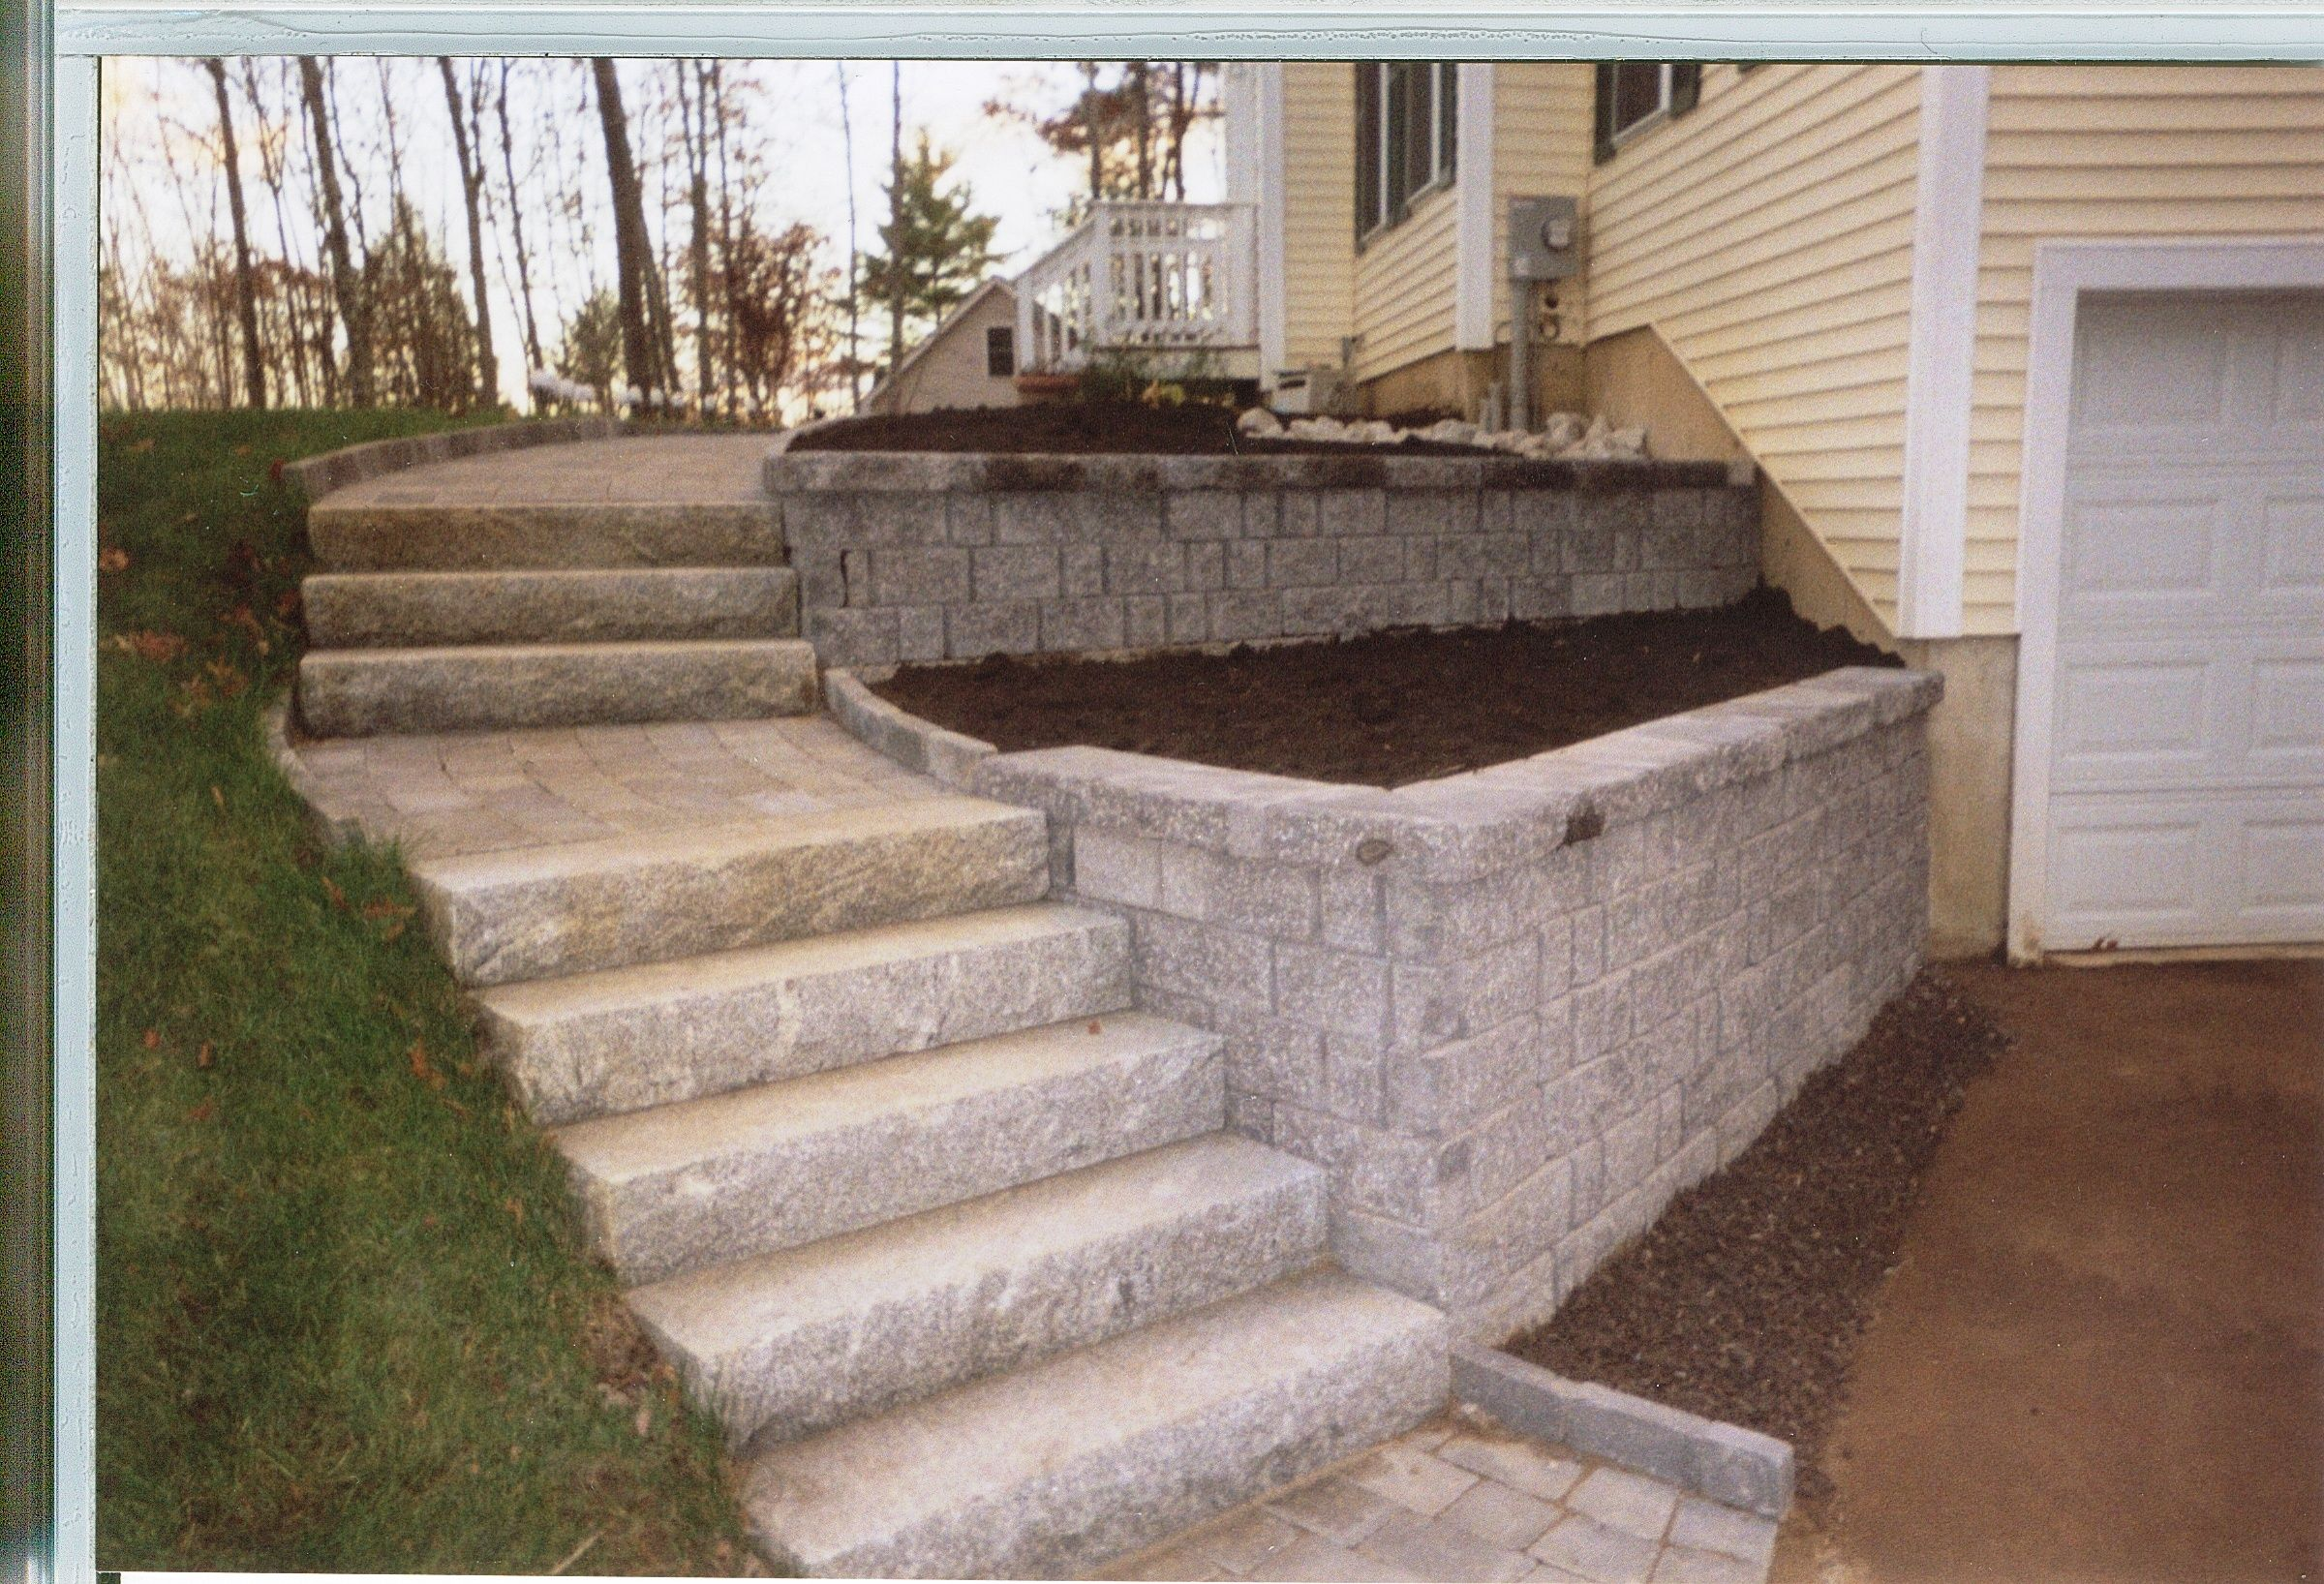 Granite Steps And Retaining Wall Landscaping Retaining Walls Garden Stairs Gazebo With Fire Pit